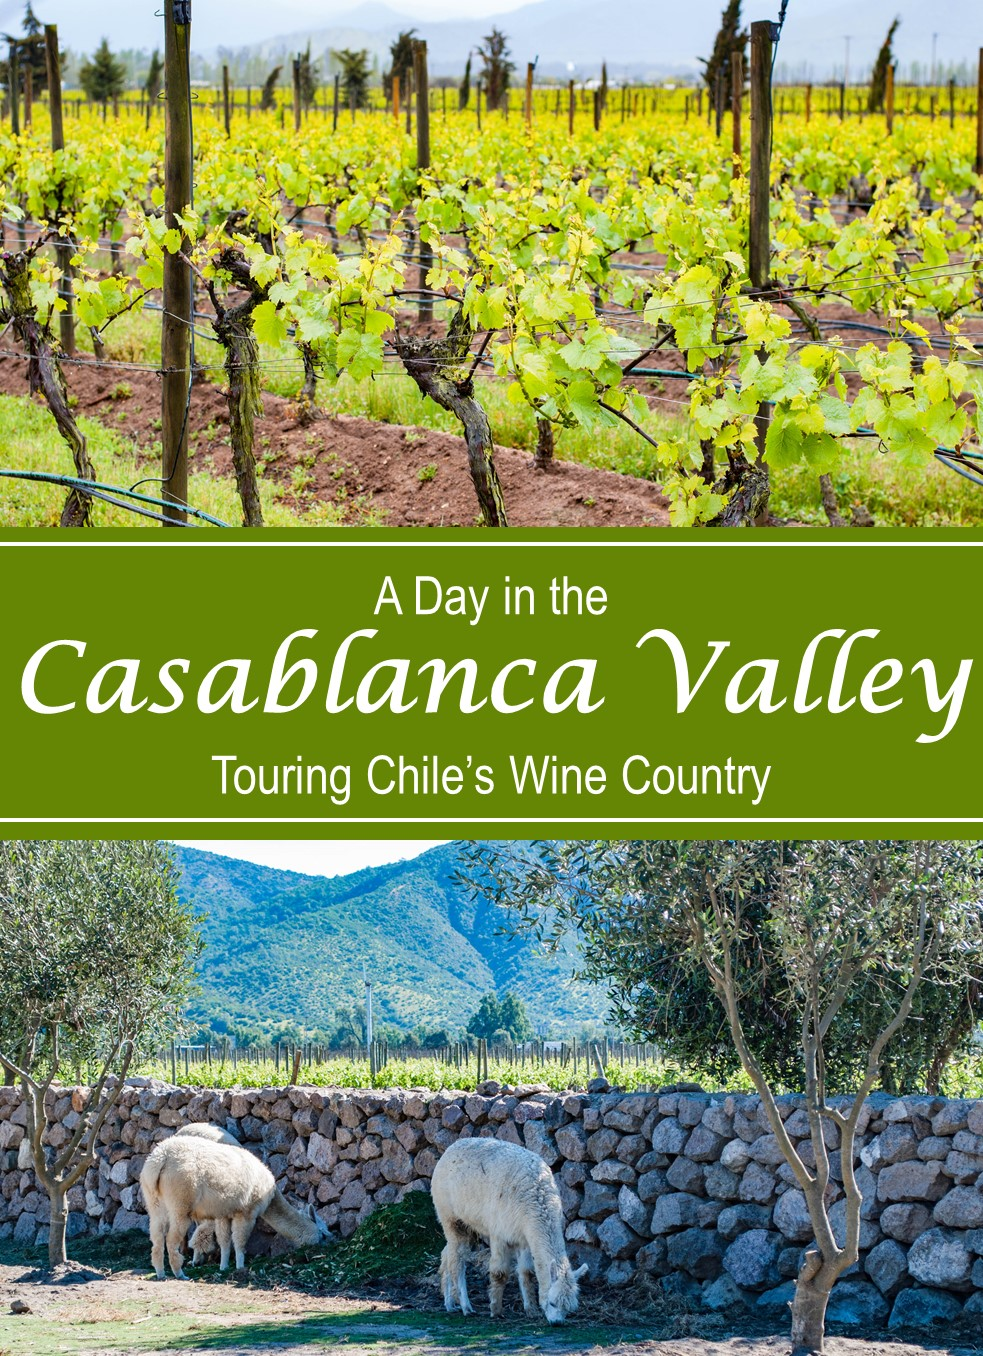 Only have one day to tour the Casablanca Valley wine region? Several companies offer tours complete with transportation, guide, and tastings at 3+ wineries!